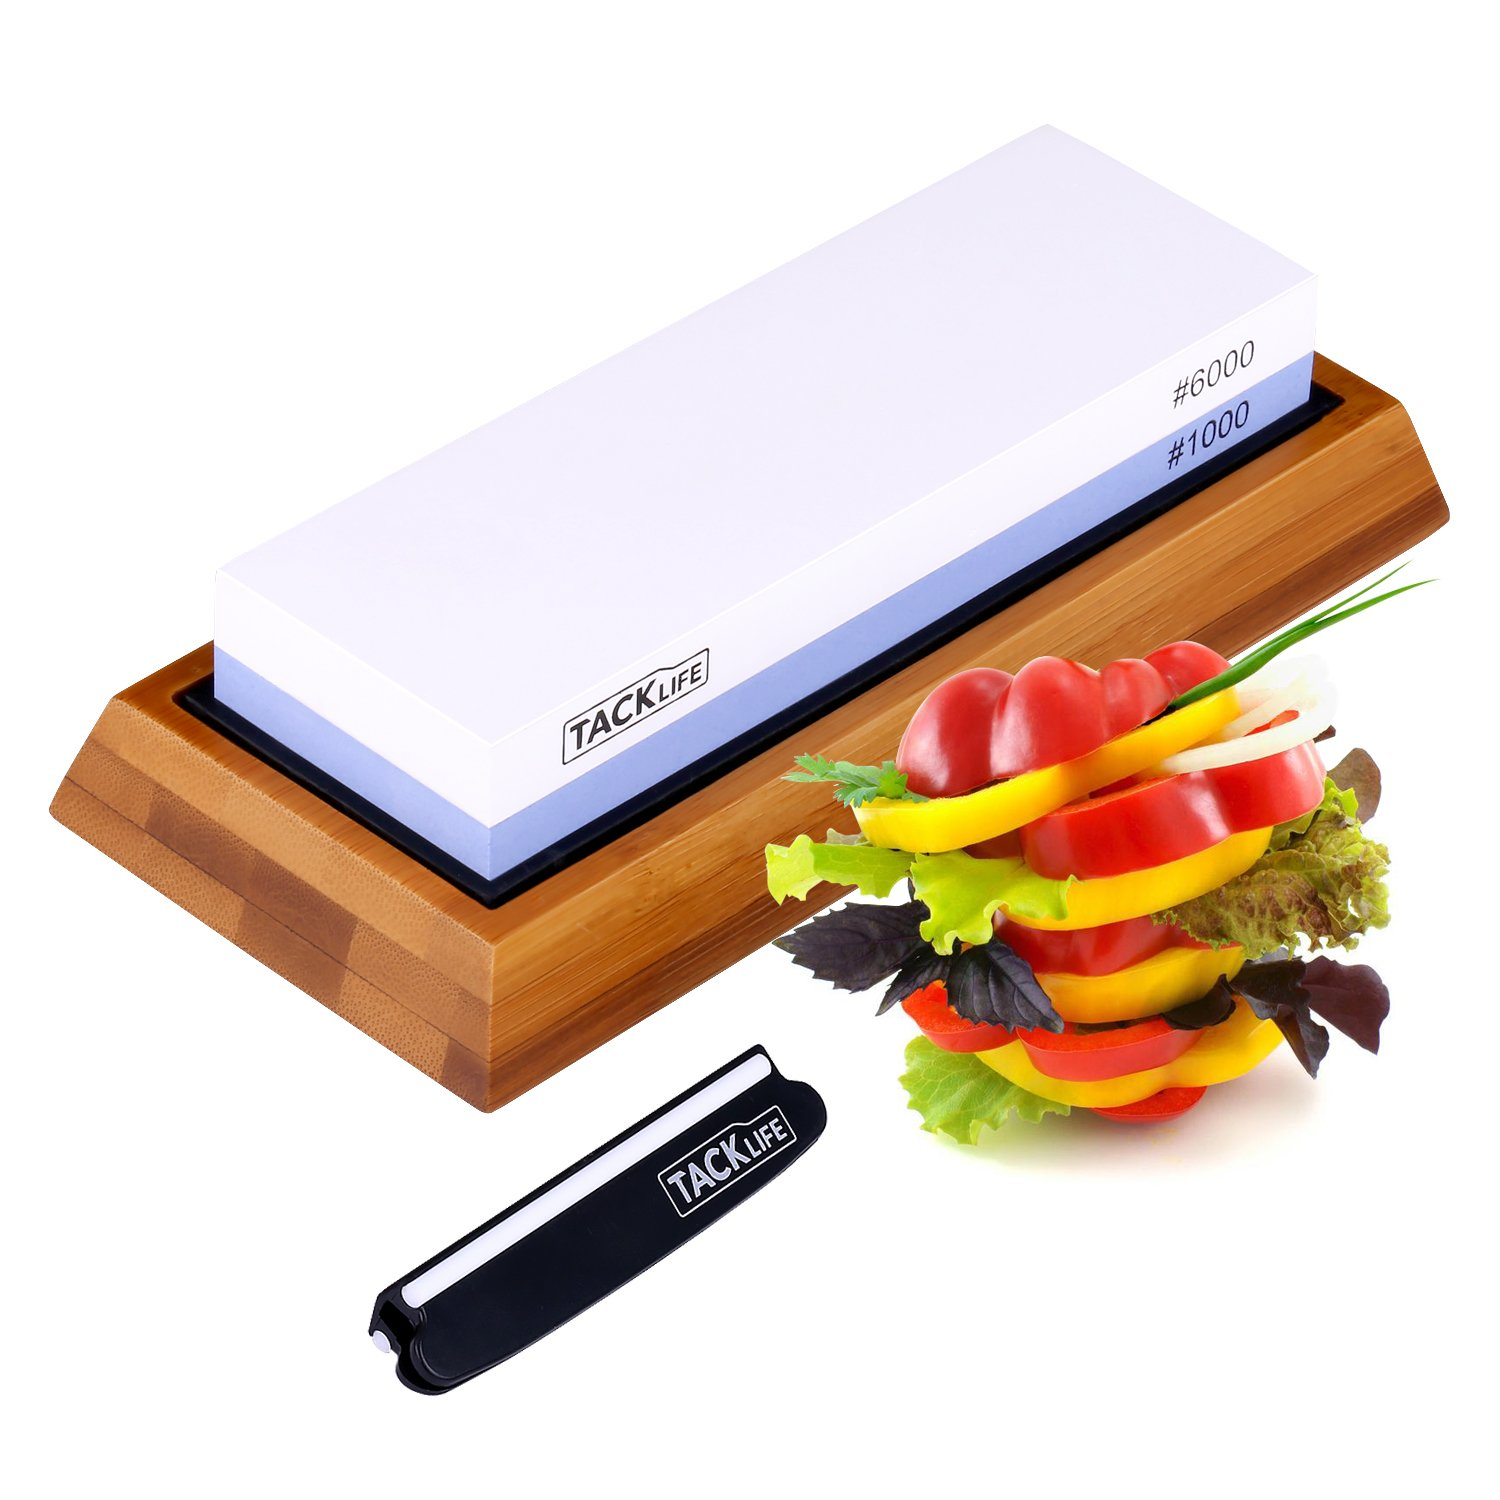 Premium Knife Sharpening Stone, Tacklife 1000/6000 Grits Double-Sided Whetstone with Non-Slip Bamboo, Rubber Base, Angle Guide - High Qualified White Corundum Waterstone - HSS1A